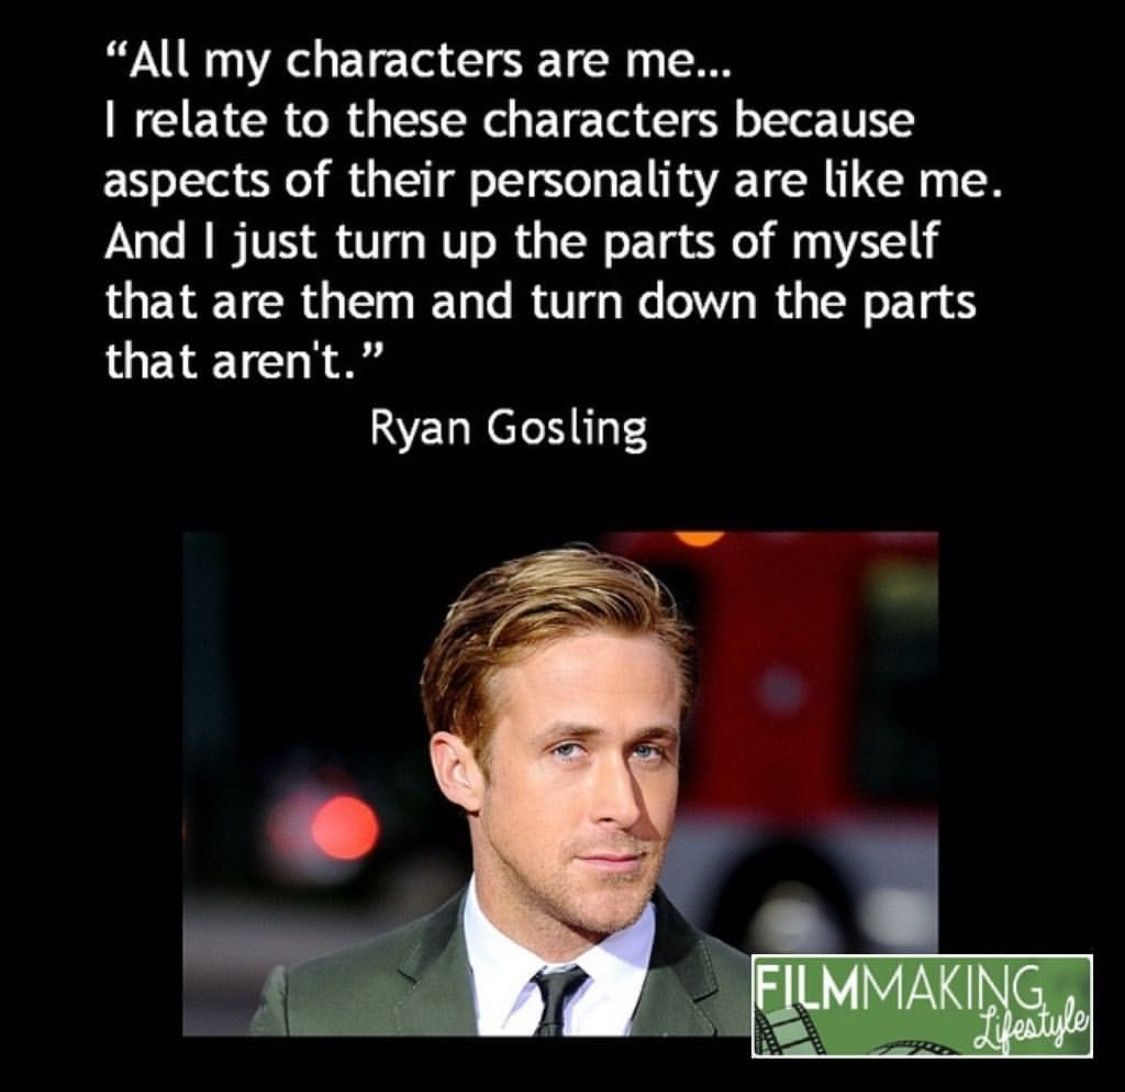 Quotes of famous people about the theater